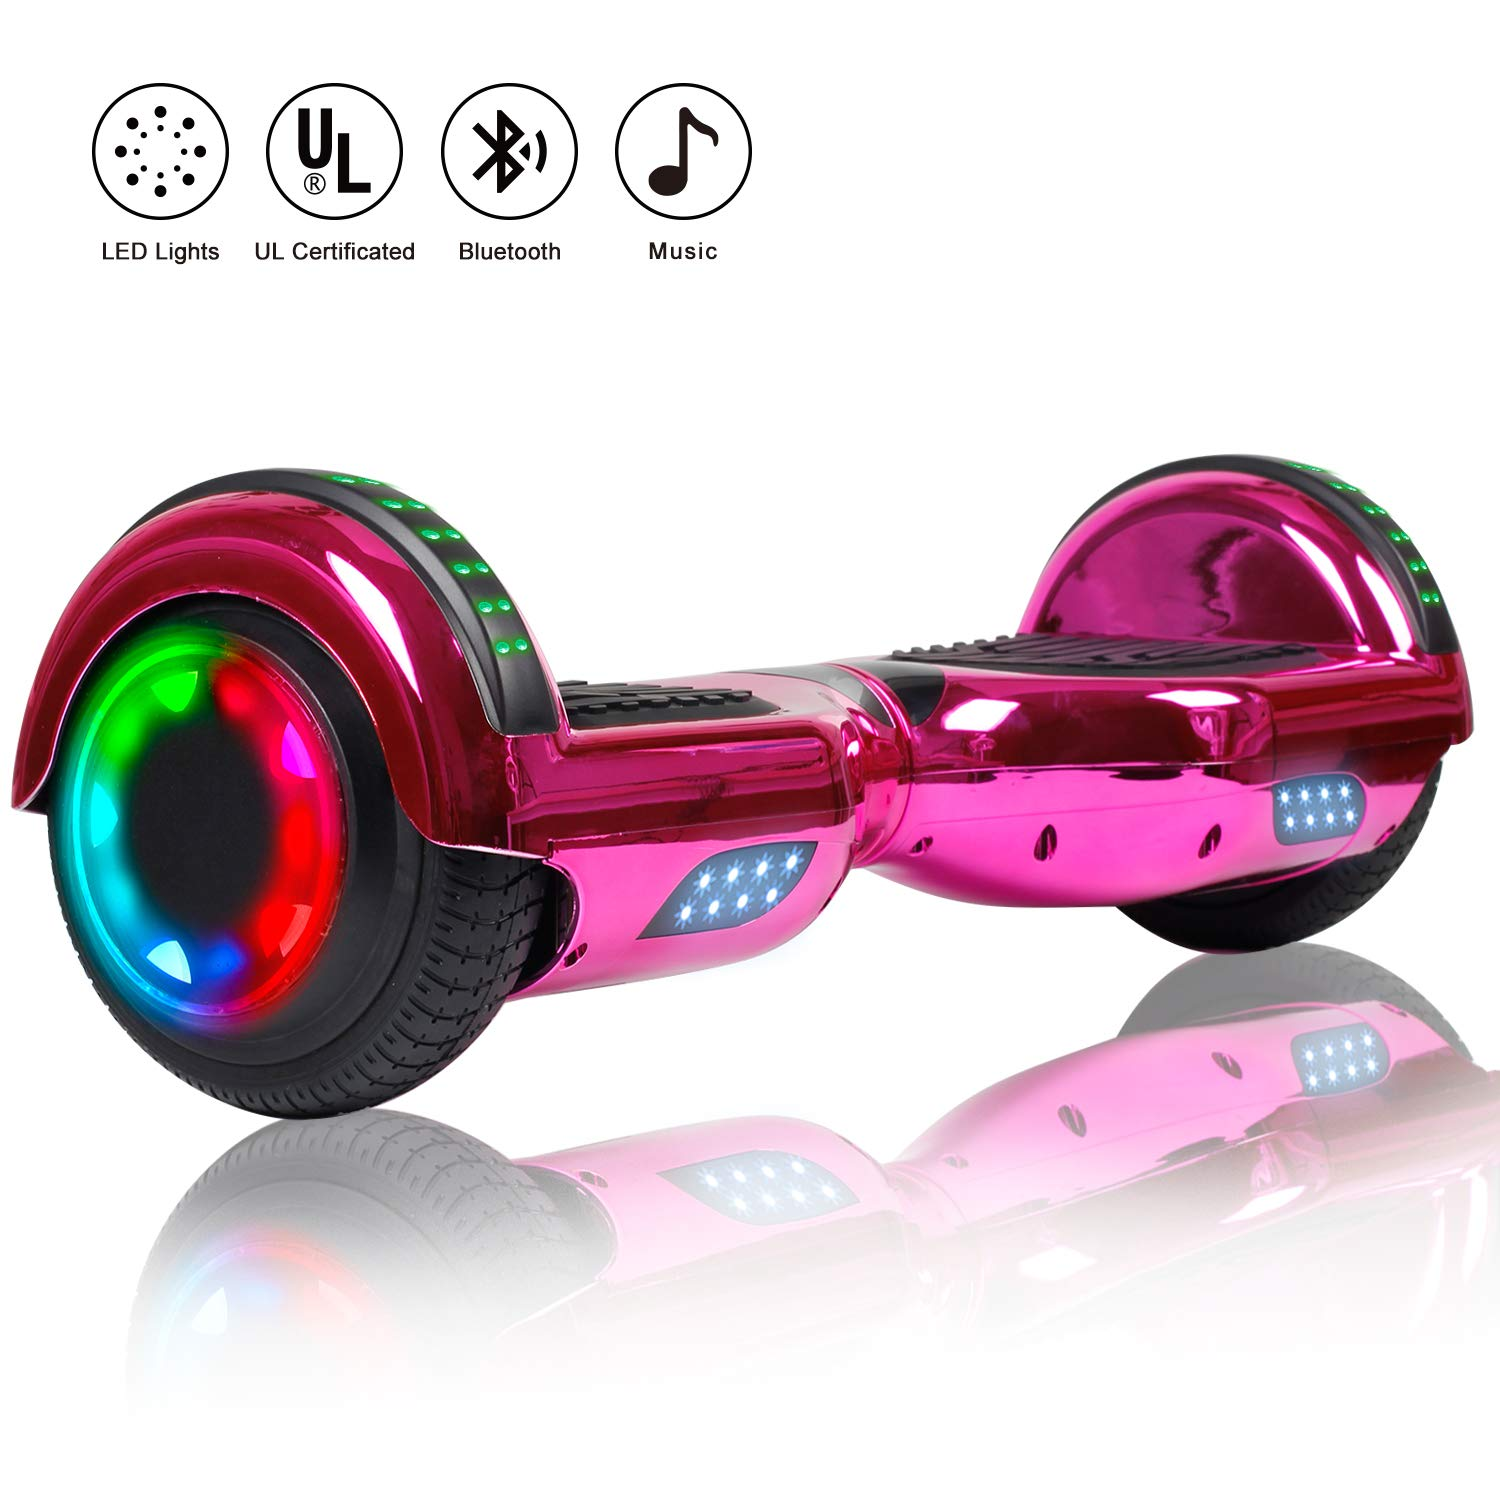 Felimoda Hoverboard 6.5 inch w/Bluetooth Speaker and LED Wheels Side Lights- UL2272 Certified (Chrome Rose Red(with Bluetooth))